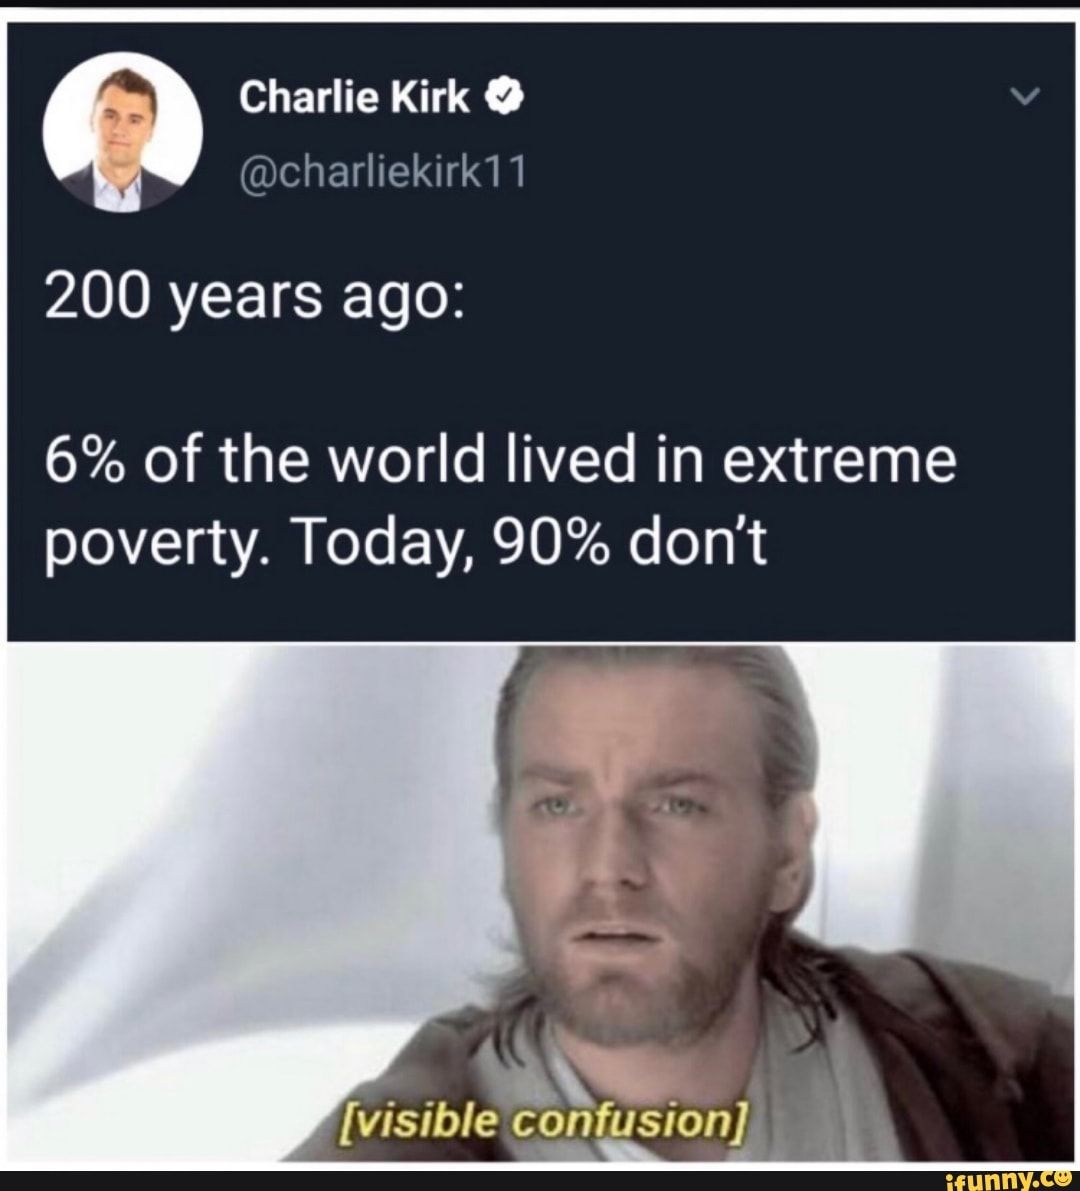 Charlie Kirk º 200 years ago 6 of the world lived in